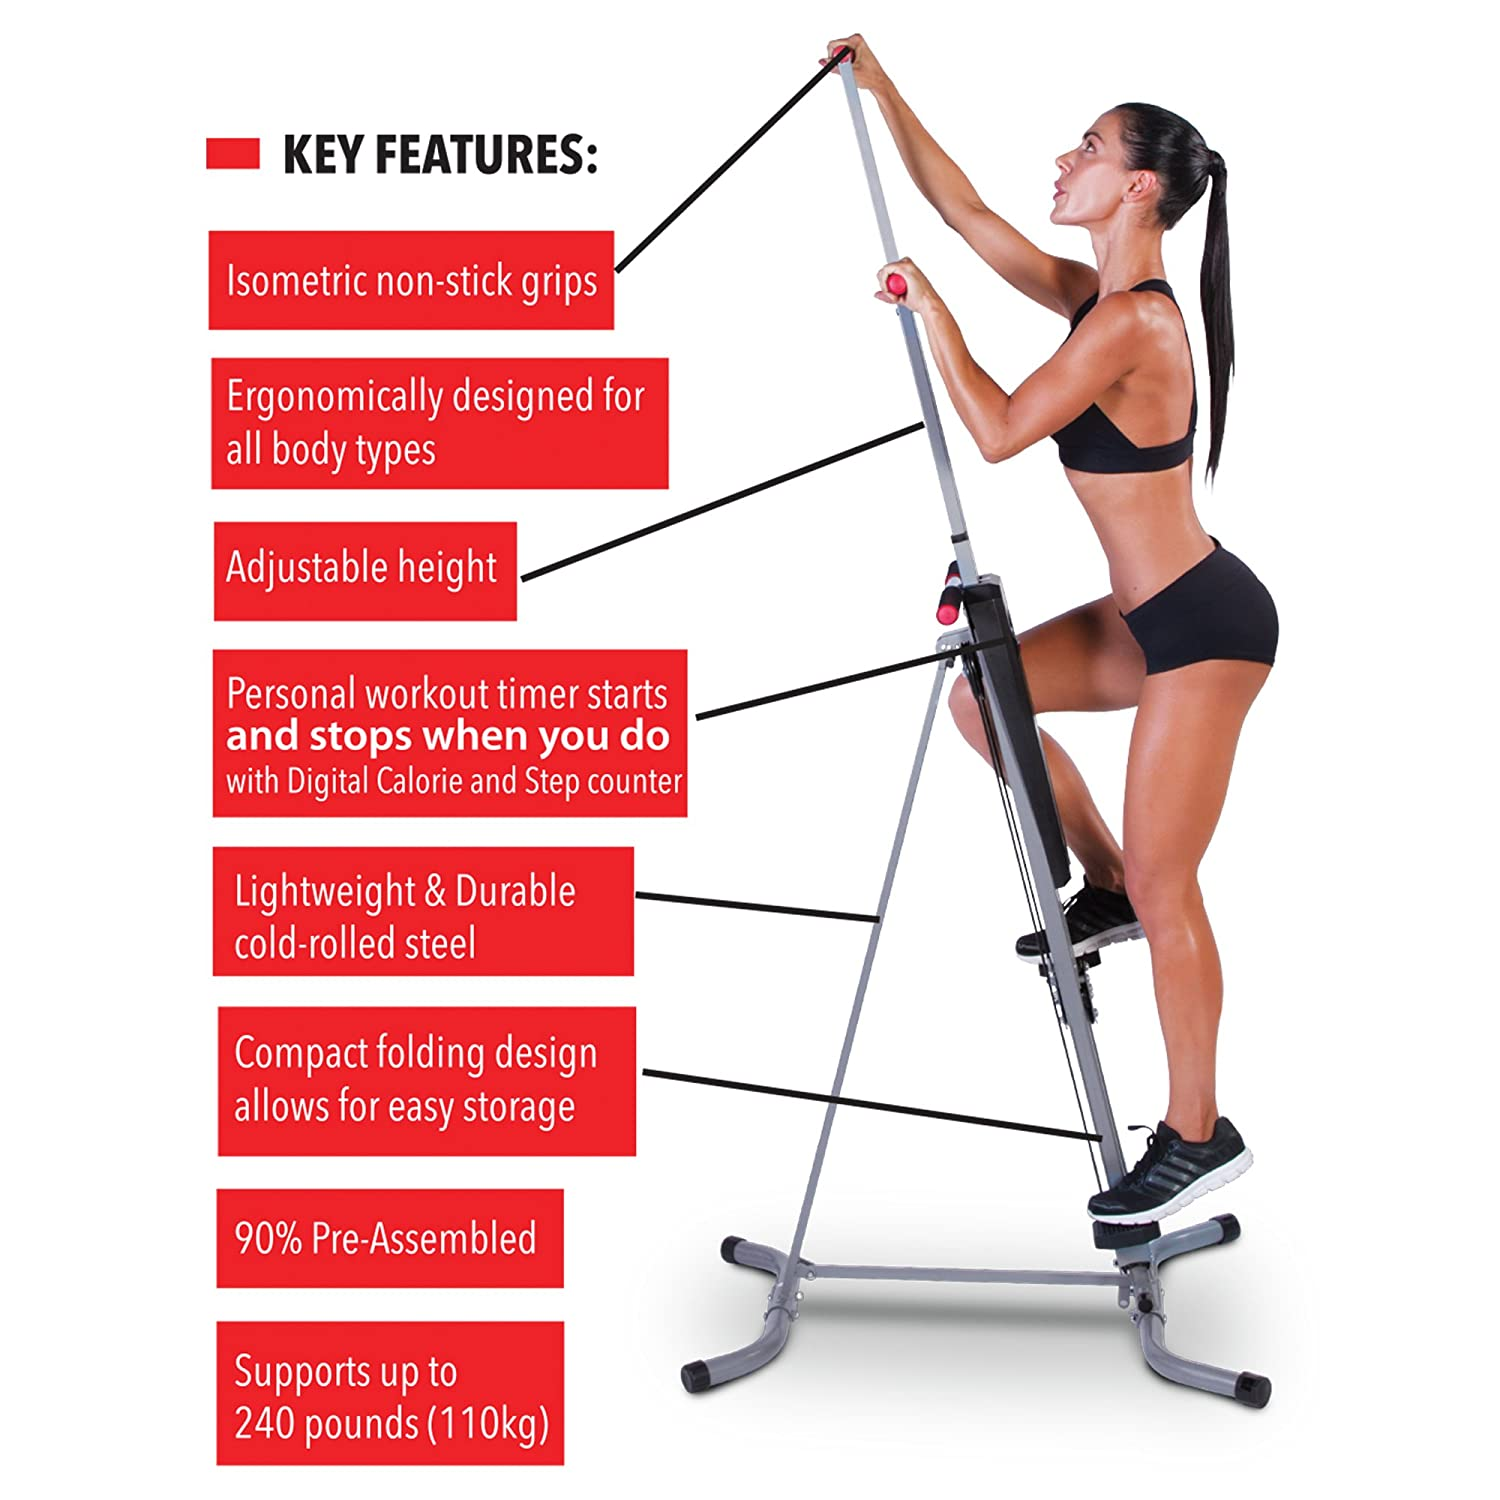 Home Gym Vertical Climber Review